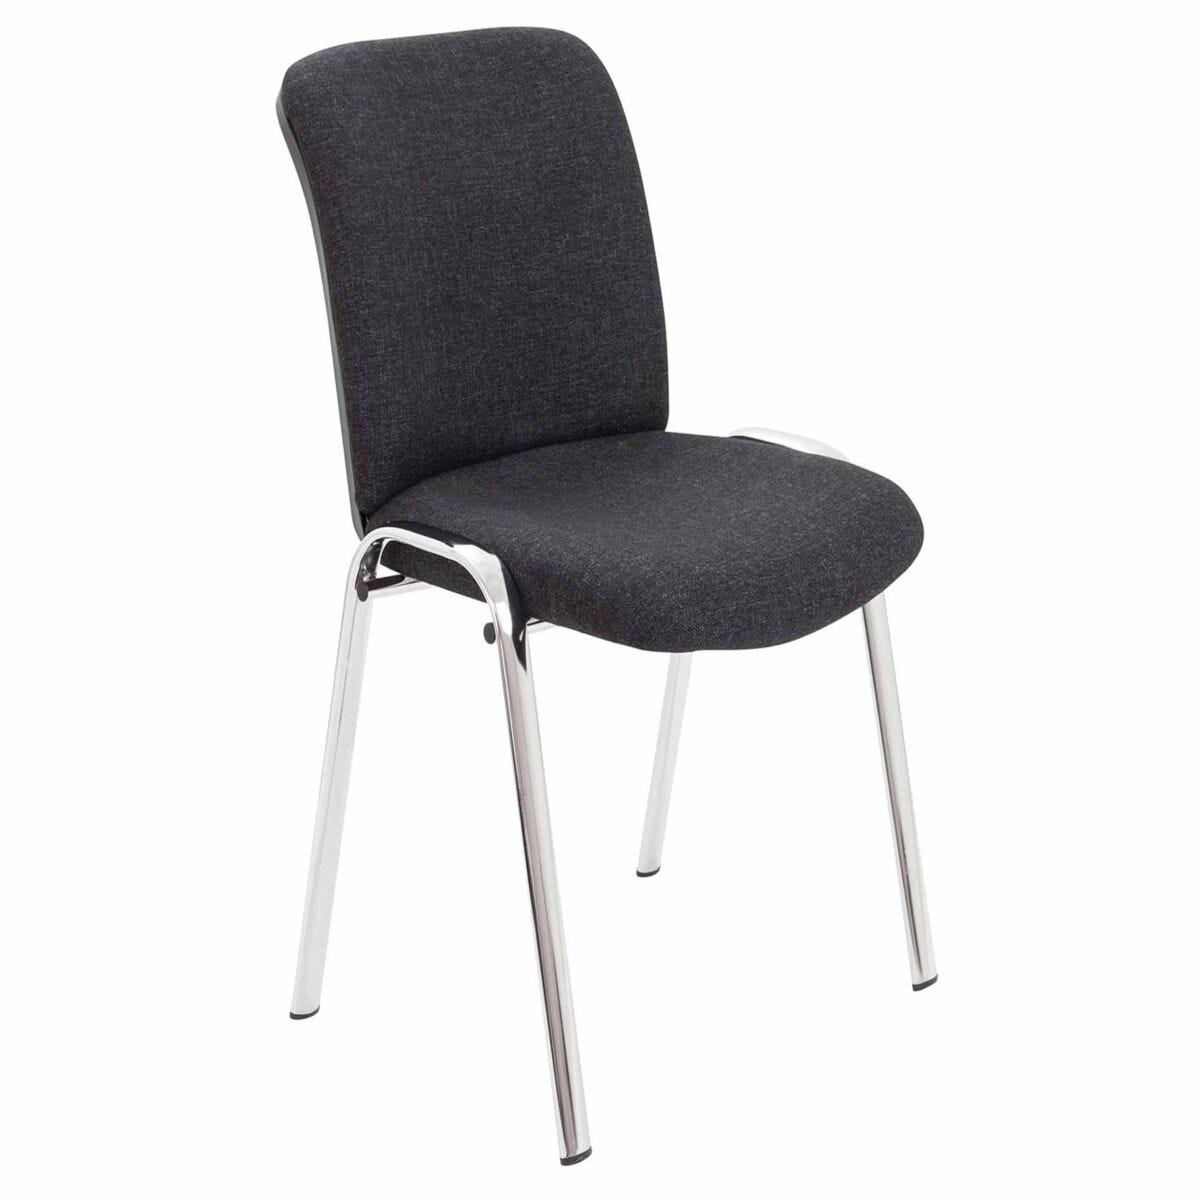 TC Office Pavilion Fabric Conference Chair with Chrome Frame